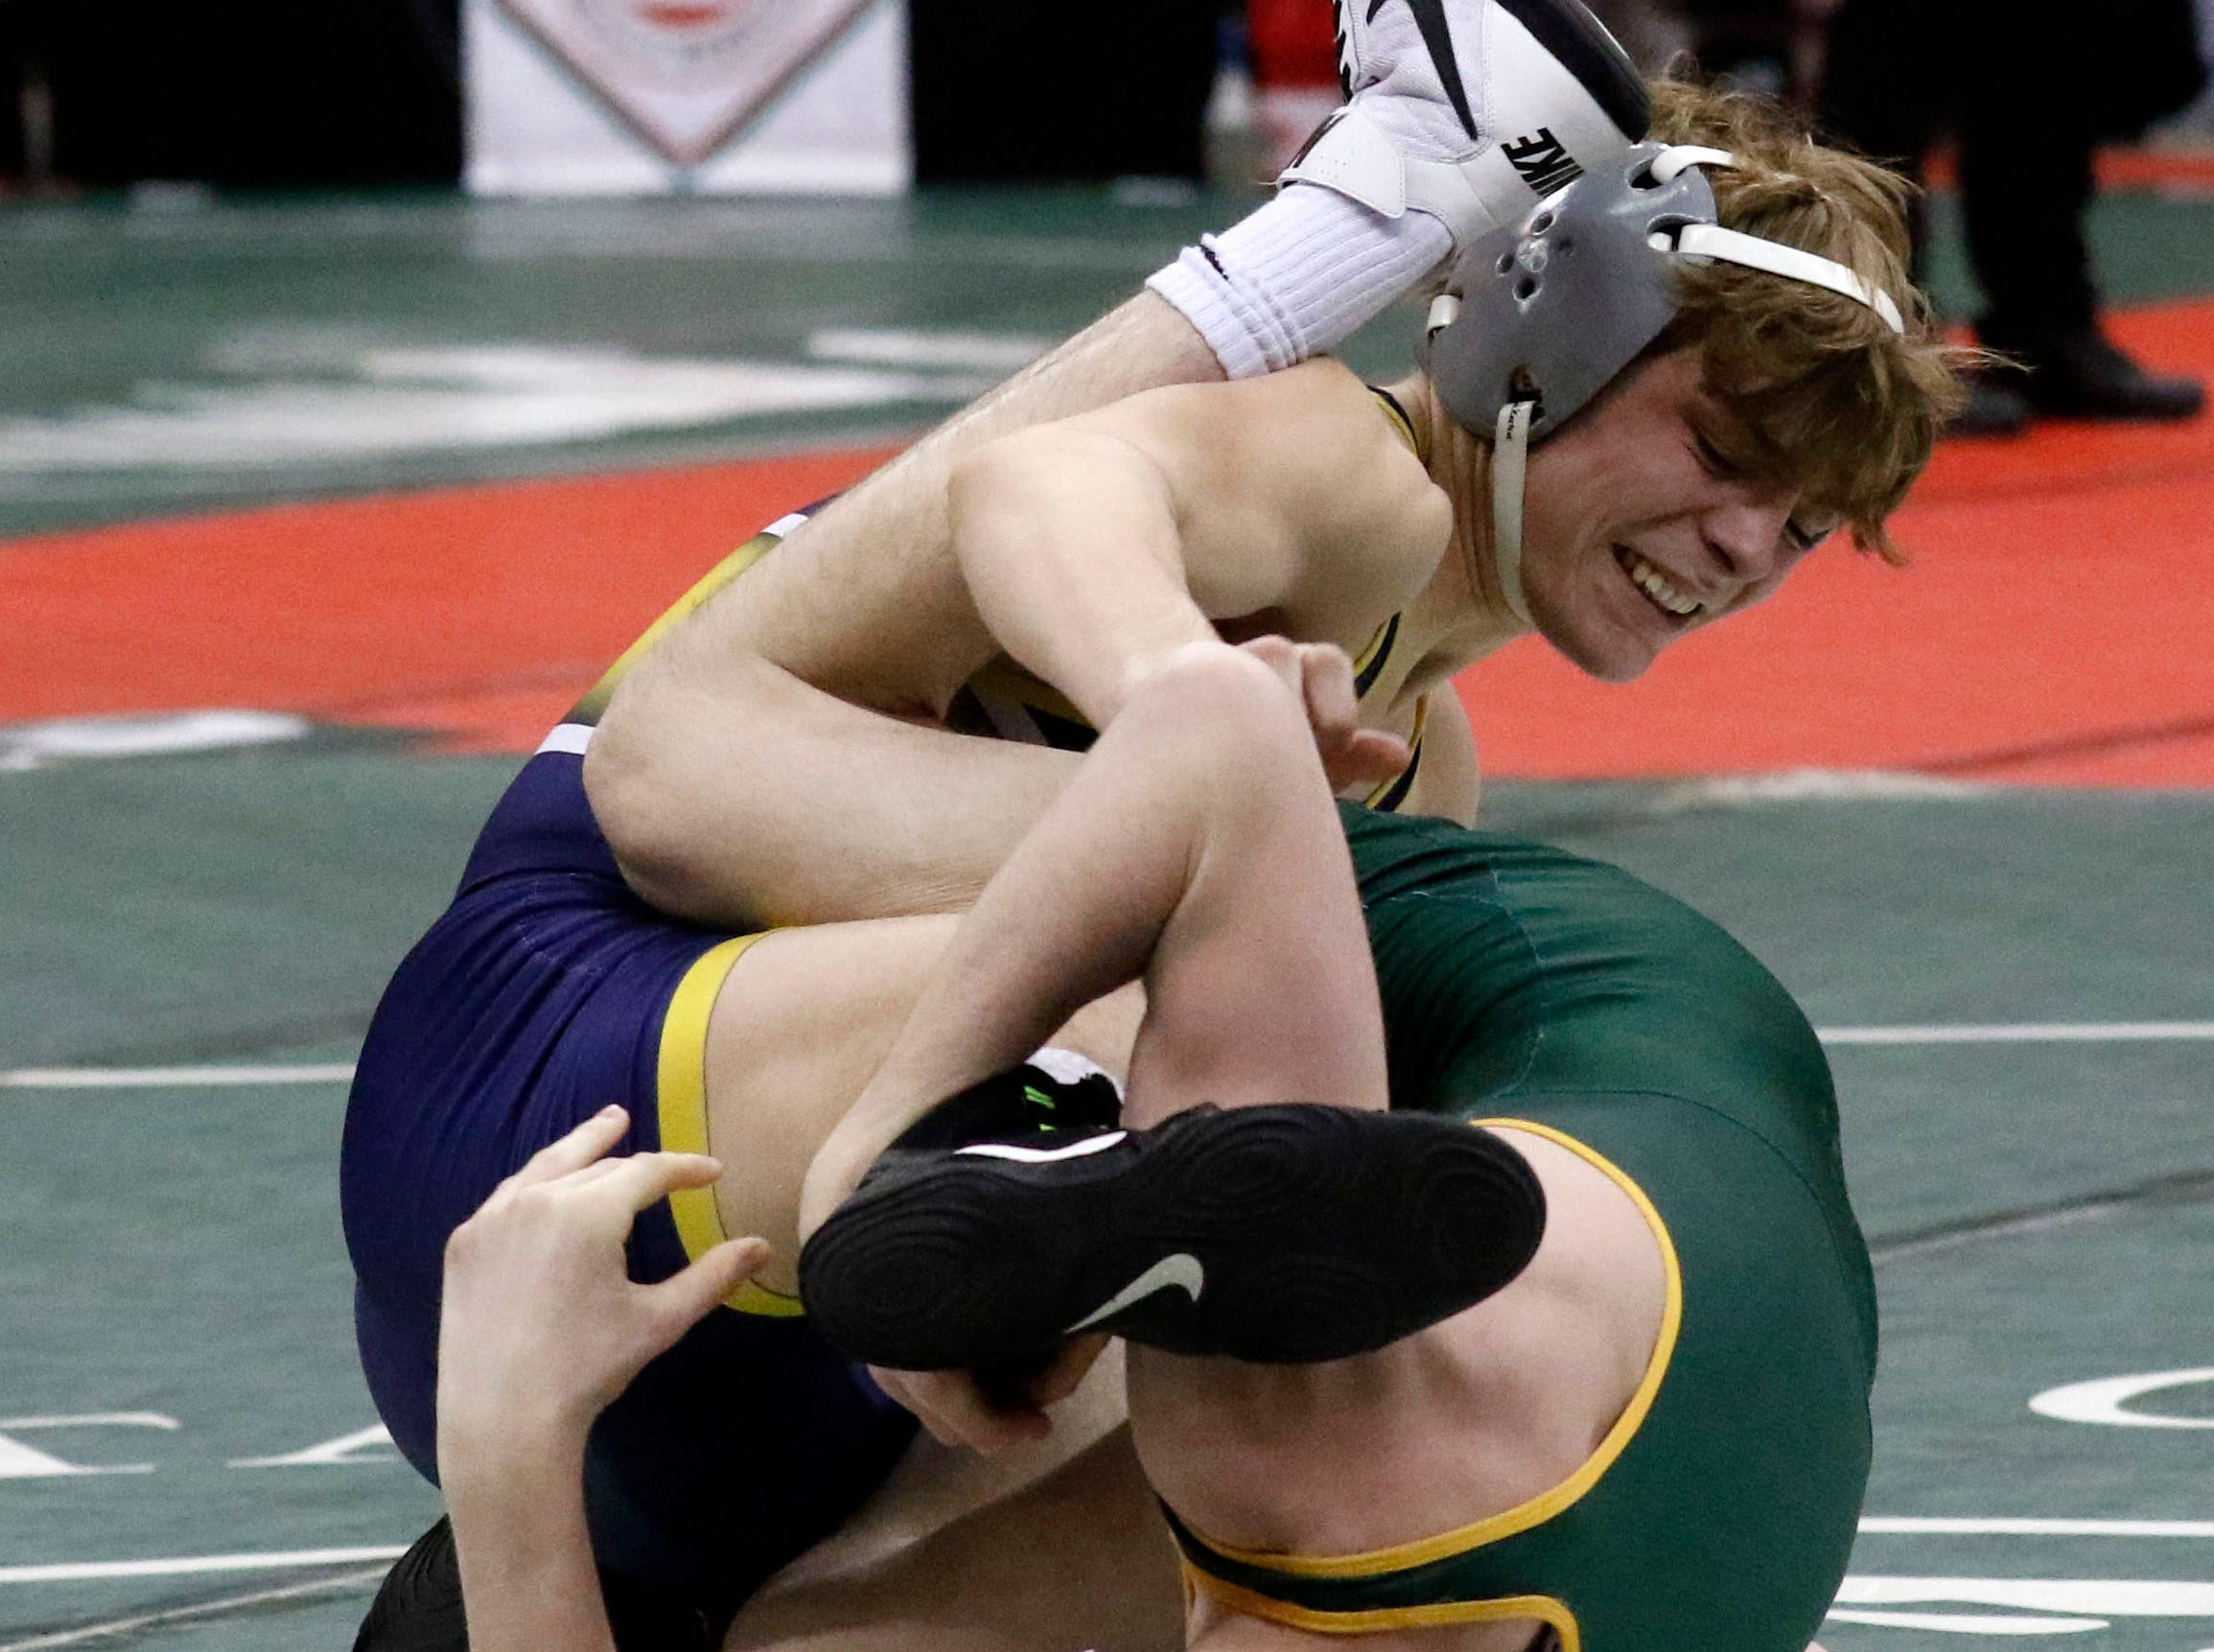 Lancaster's Logan Agin wrestles Friday, March 8, 2019, during the State Wrestling Tournament at the Jerome Schottenstein Center at Ohio State University in Columbus.